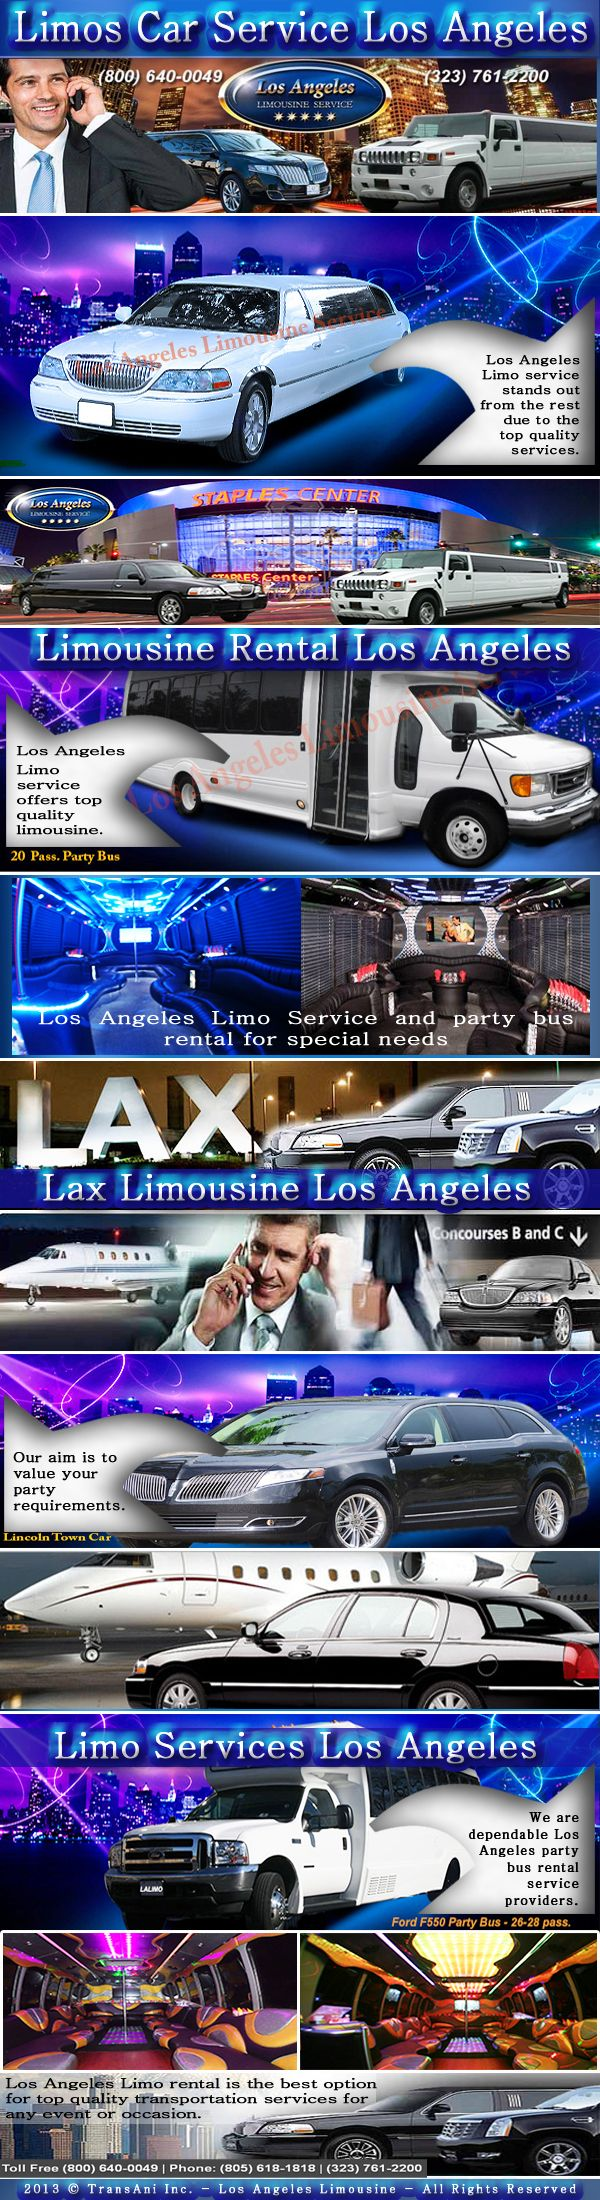 Visit our site http://www.lalimorental.com for more information on Limos Car Service Los Angeles.Excitement and glamour of Limos Car Service Los Angeles to daily living can help to make everyone involved feel special and important. When trying to make your world a little brighter, consider how hiring Limos Car Service Los Angeles could improve not just your special occasions but also your everyday life.